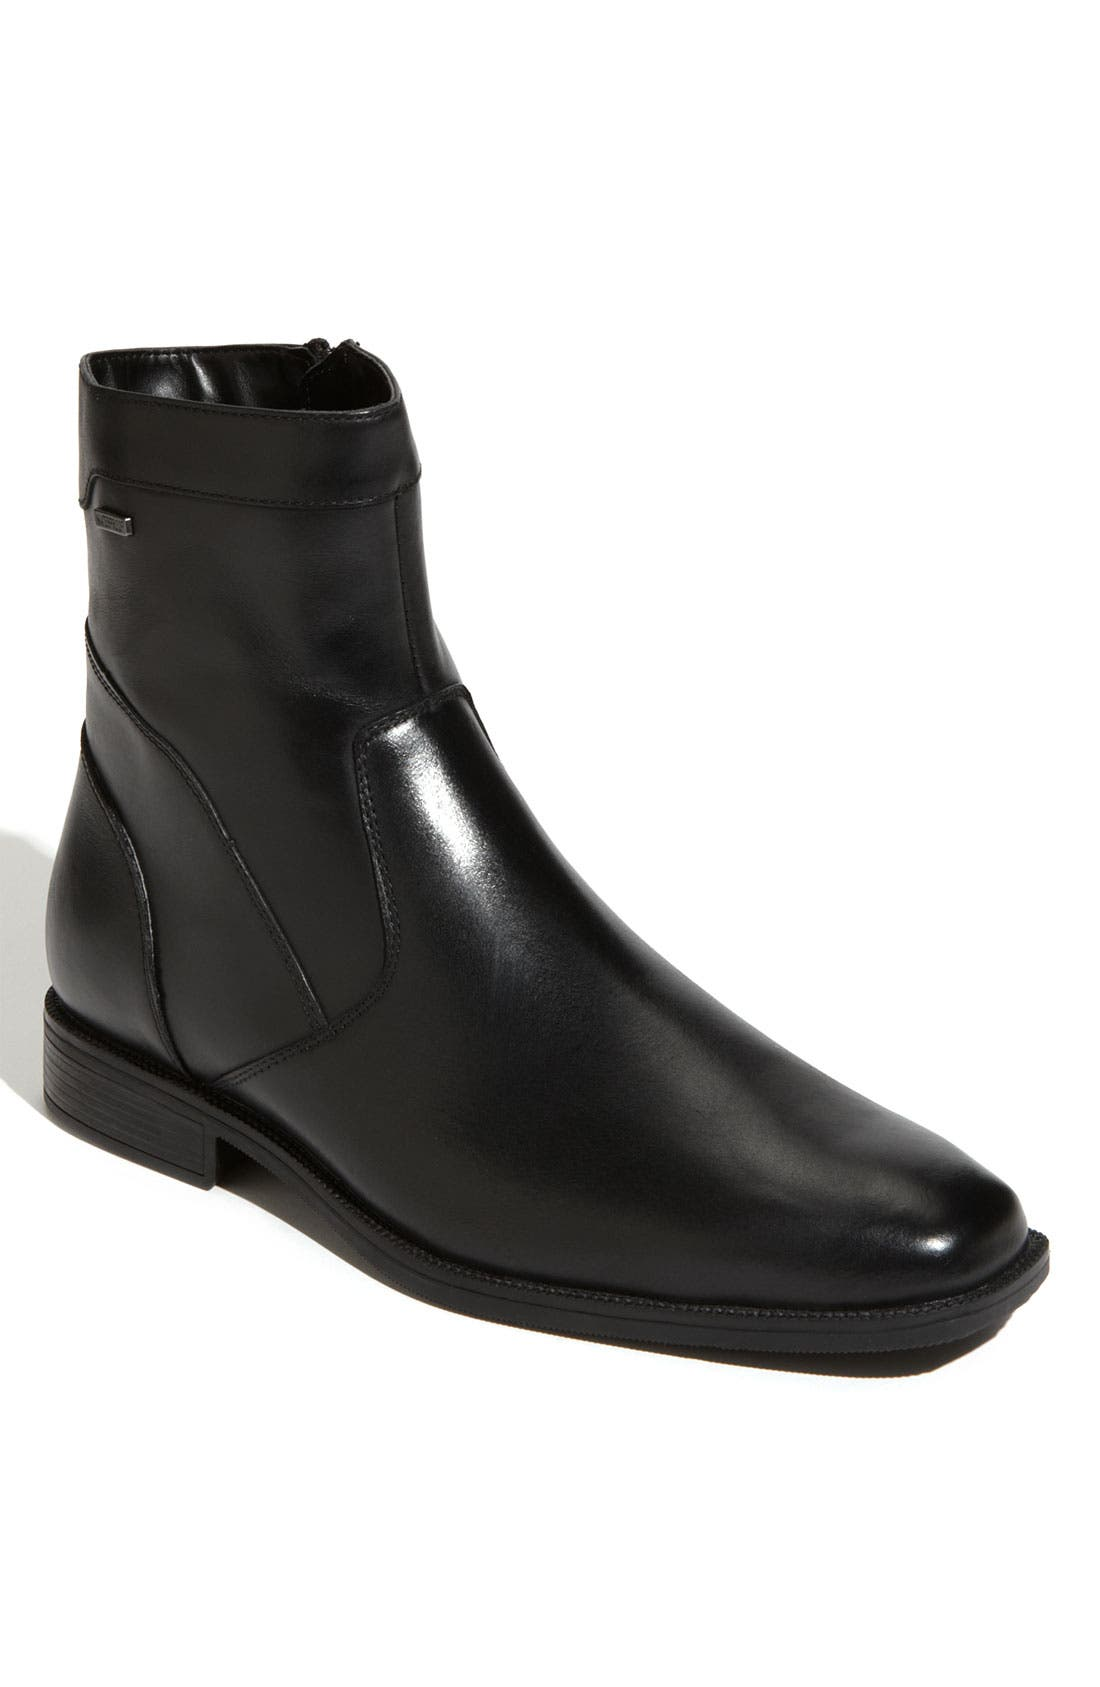 Blondo 'Valerio' Waterproof Boot (Men)